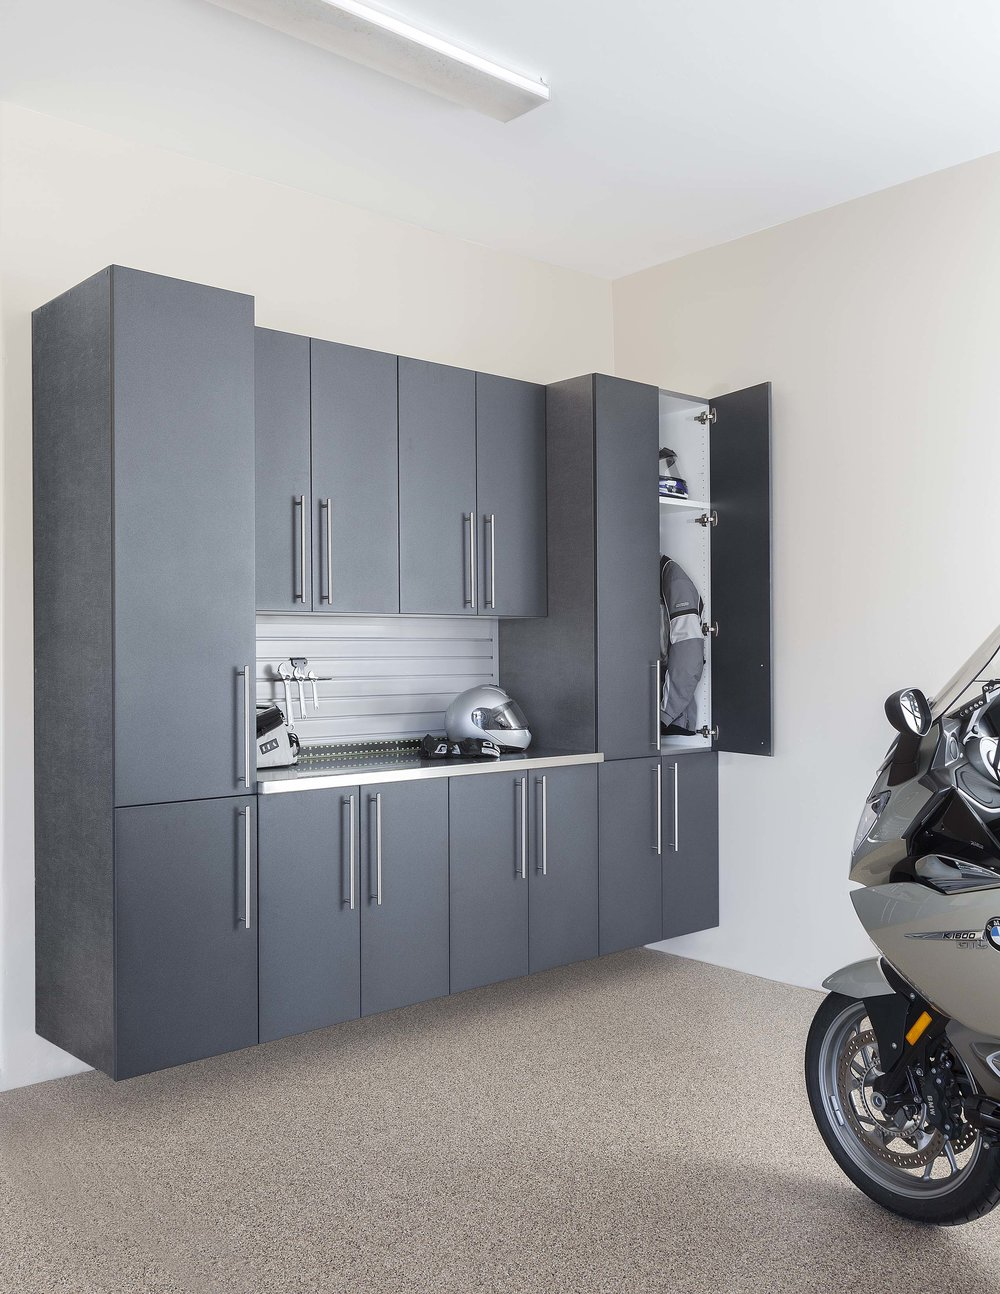 Granite Doors-Stainless with Gray Slatwall-Motorcycle-Angle-Door Open-Feb 2013.jpg